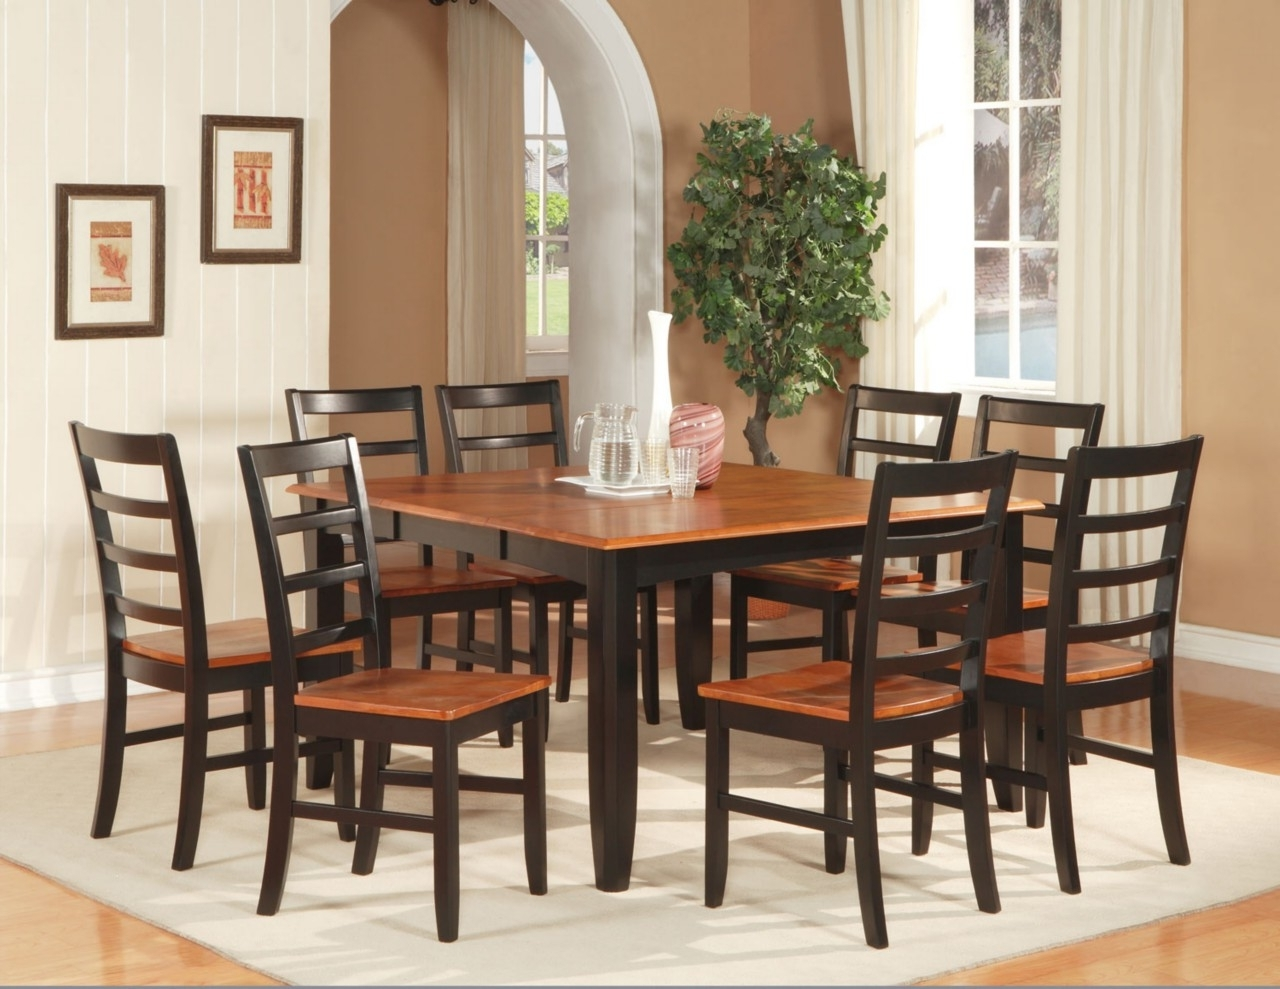 Most Current Dining Room Table Sets – Awesome House : Best Kitchen And Dining Inside Dining Room Tables And Chairs (View 14 of 25)